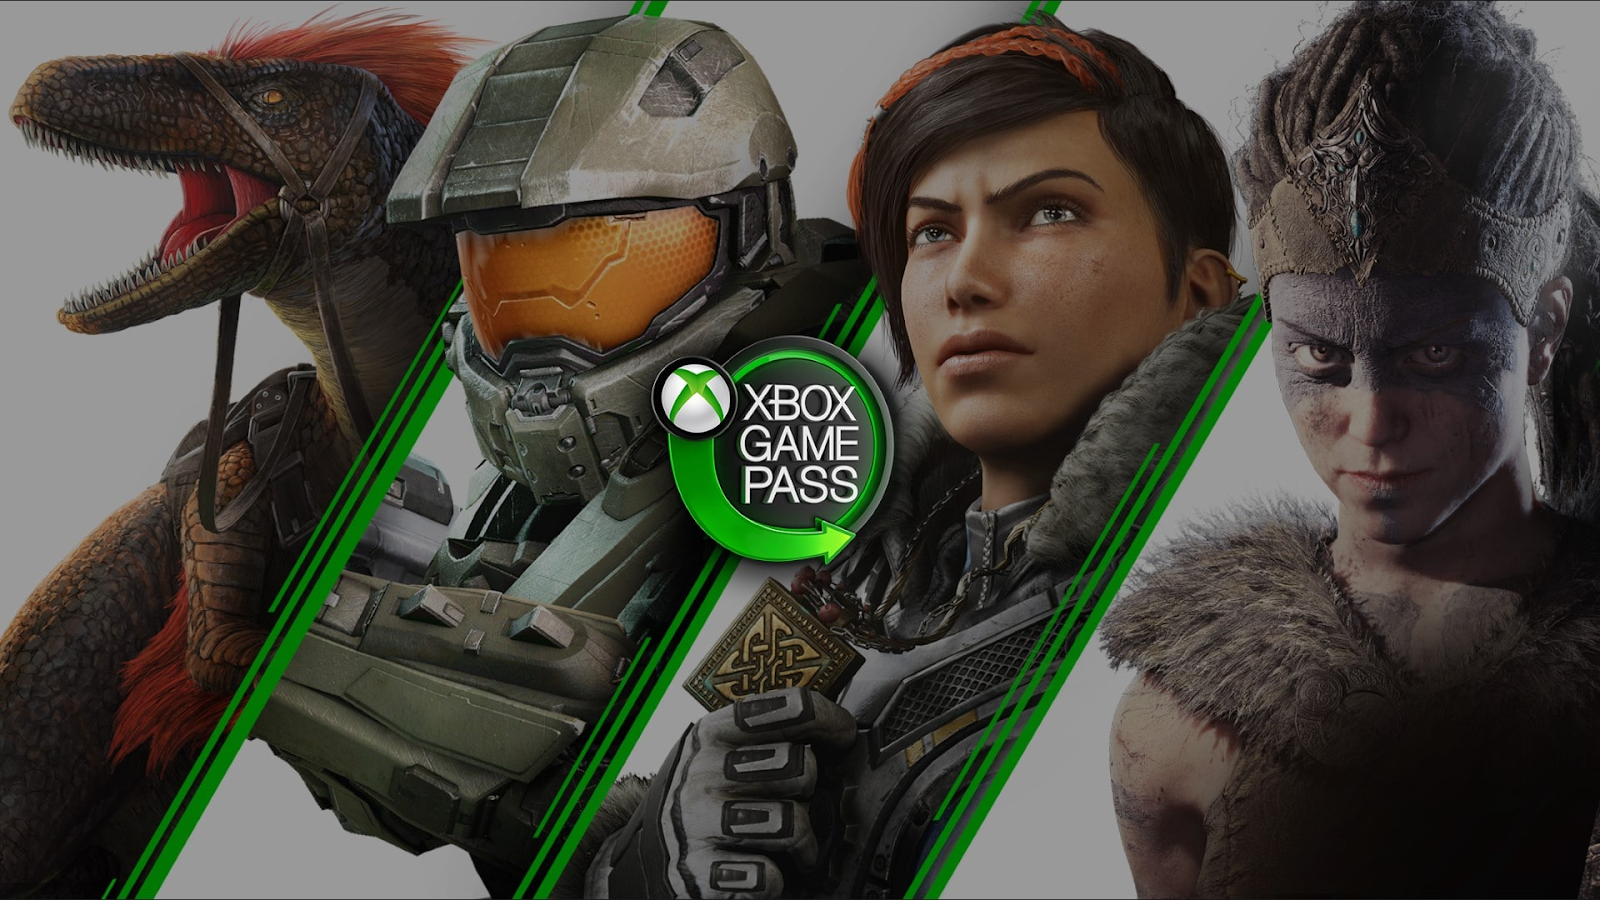 Xbox-game-pass-pc-games